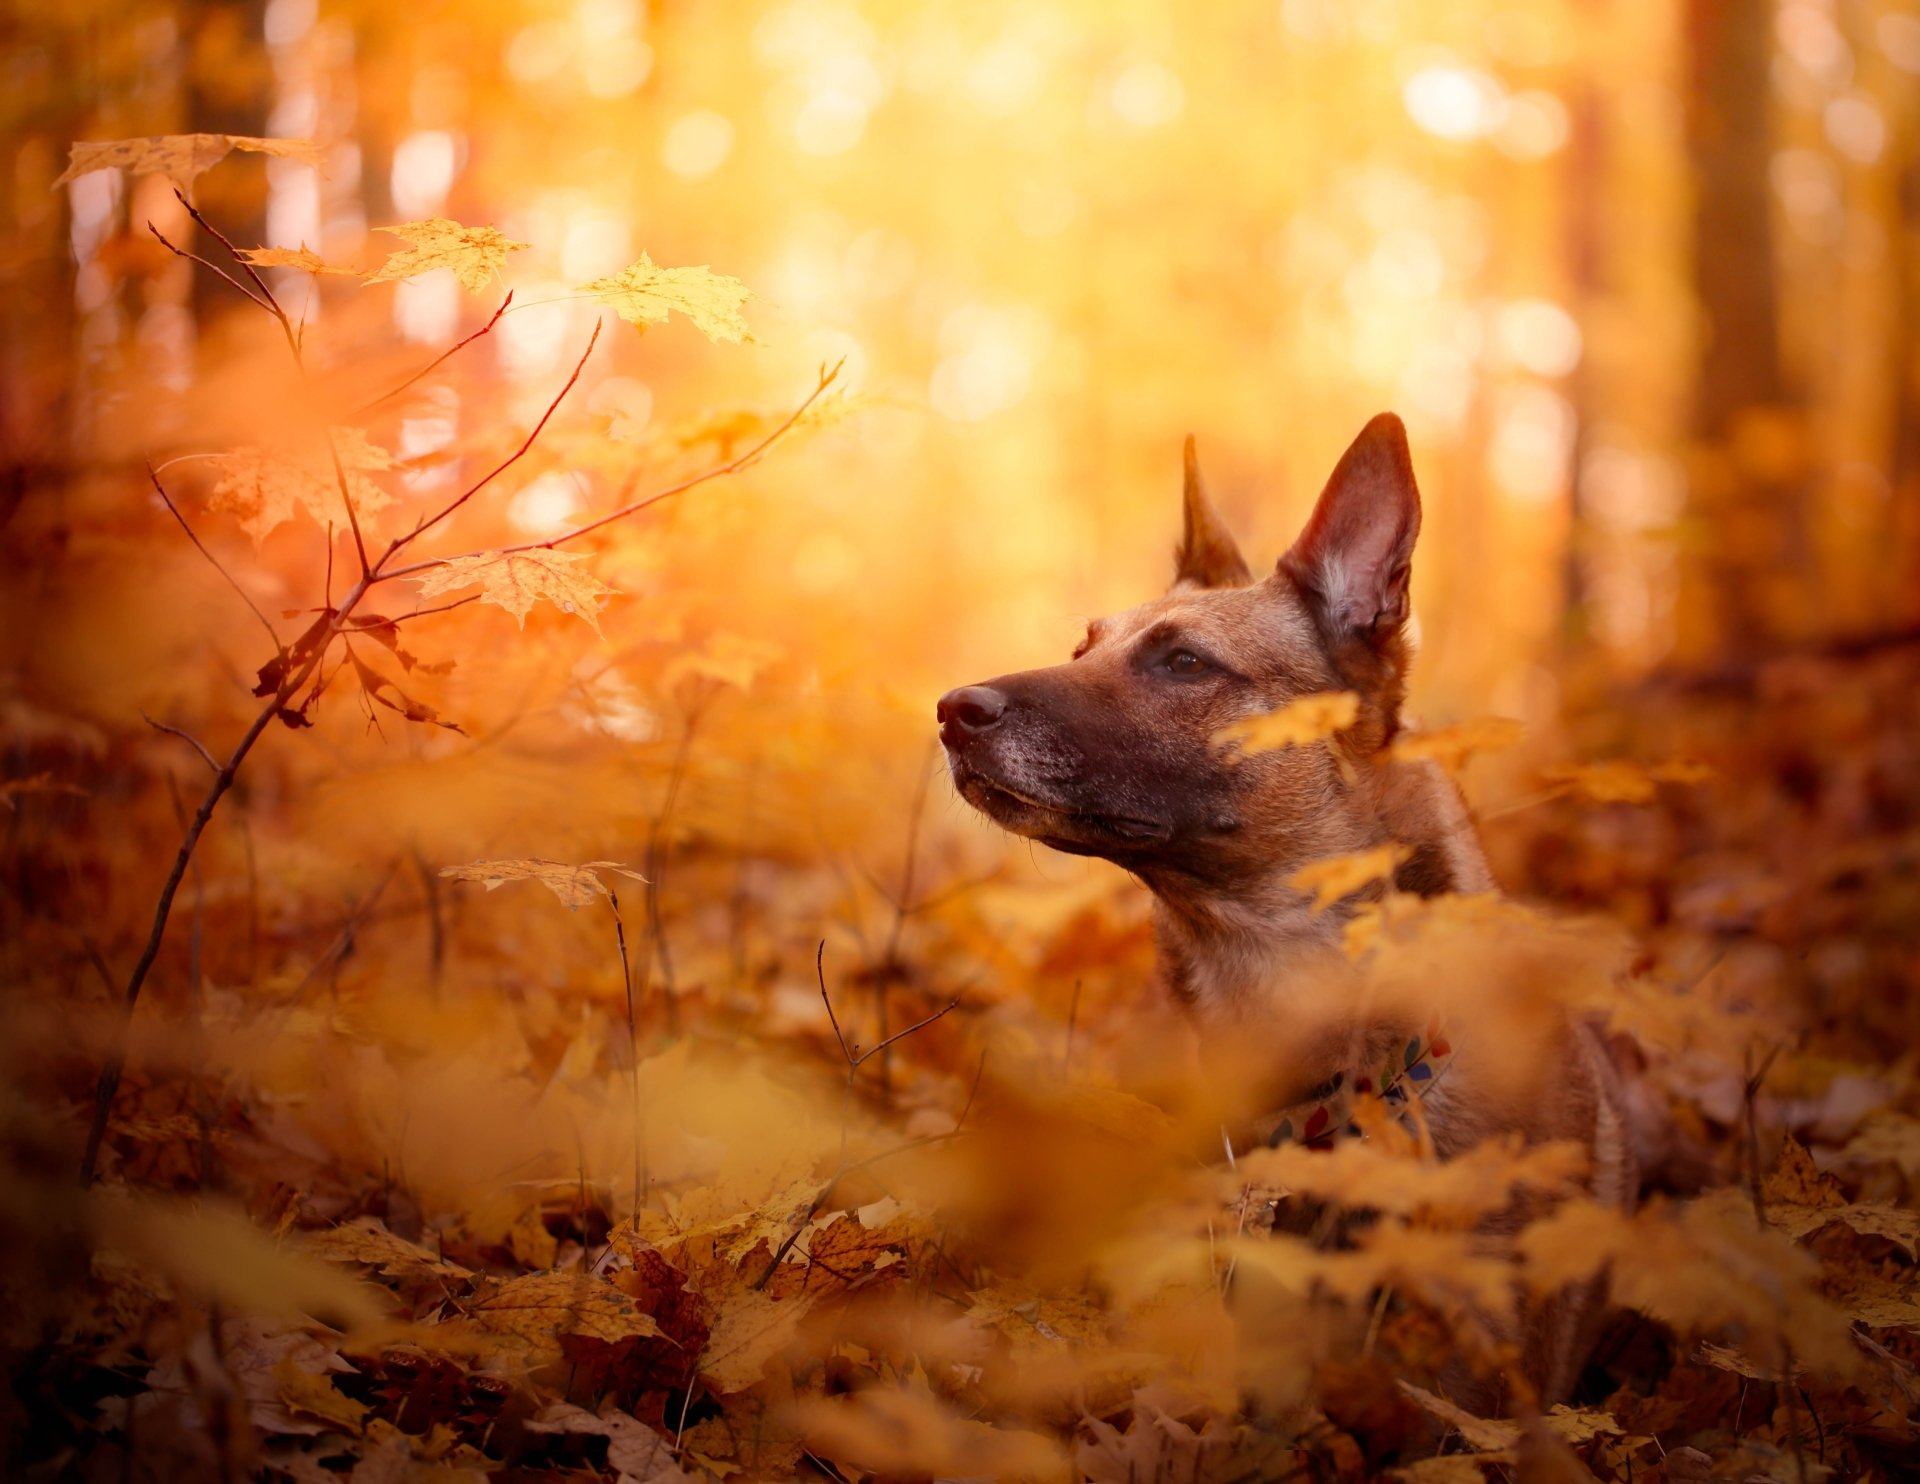 1680x1050 Fall Wallpaper Berger Belge Malinois 4k Ultra Fond D 233 Cran Hd Arri 232 Re